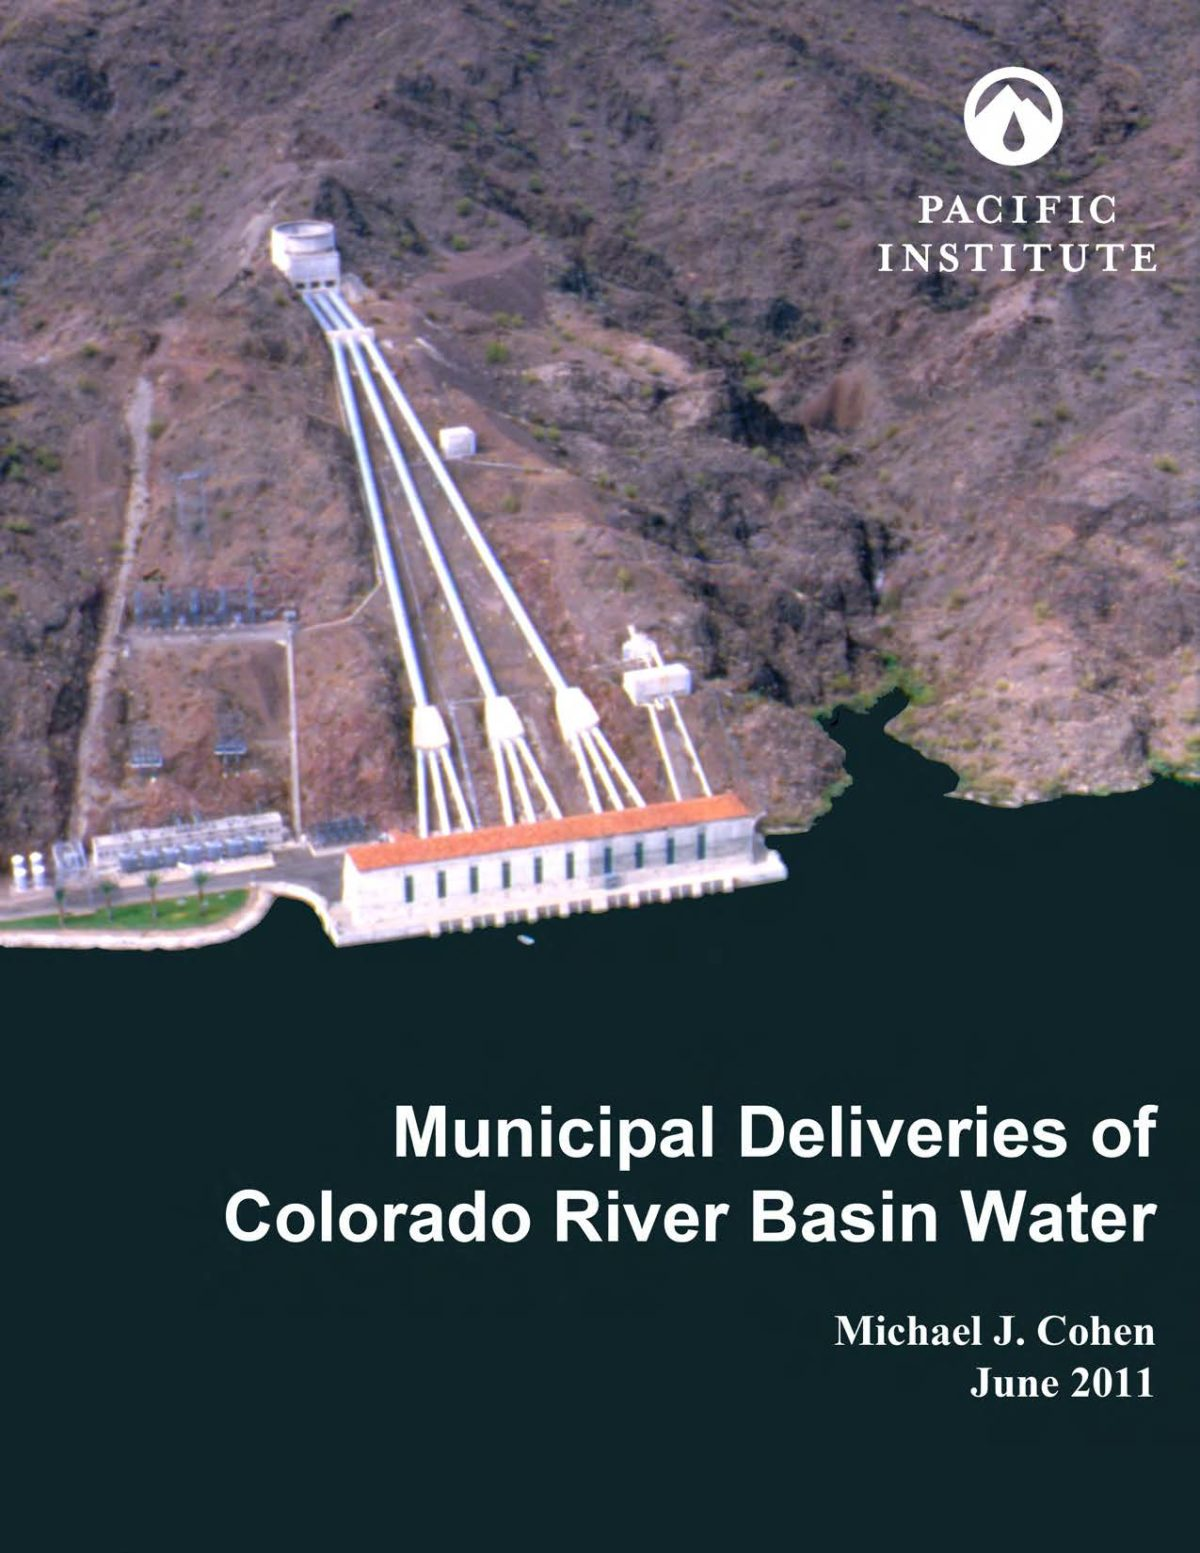 Municipal Deliveries of Colorado River Basin Water: New Report Examines 100 Cities and Agencies